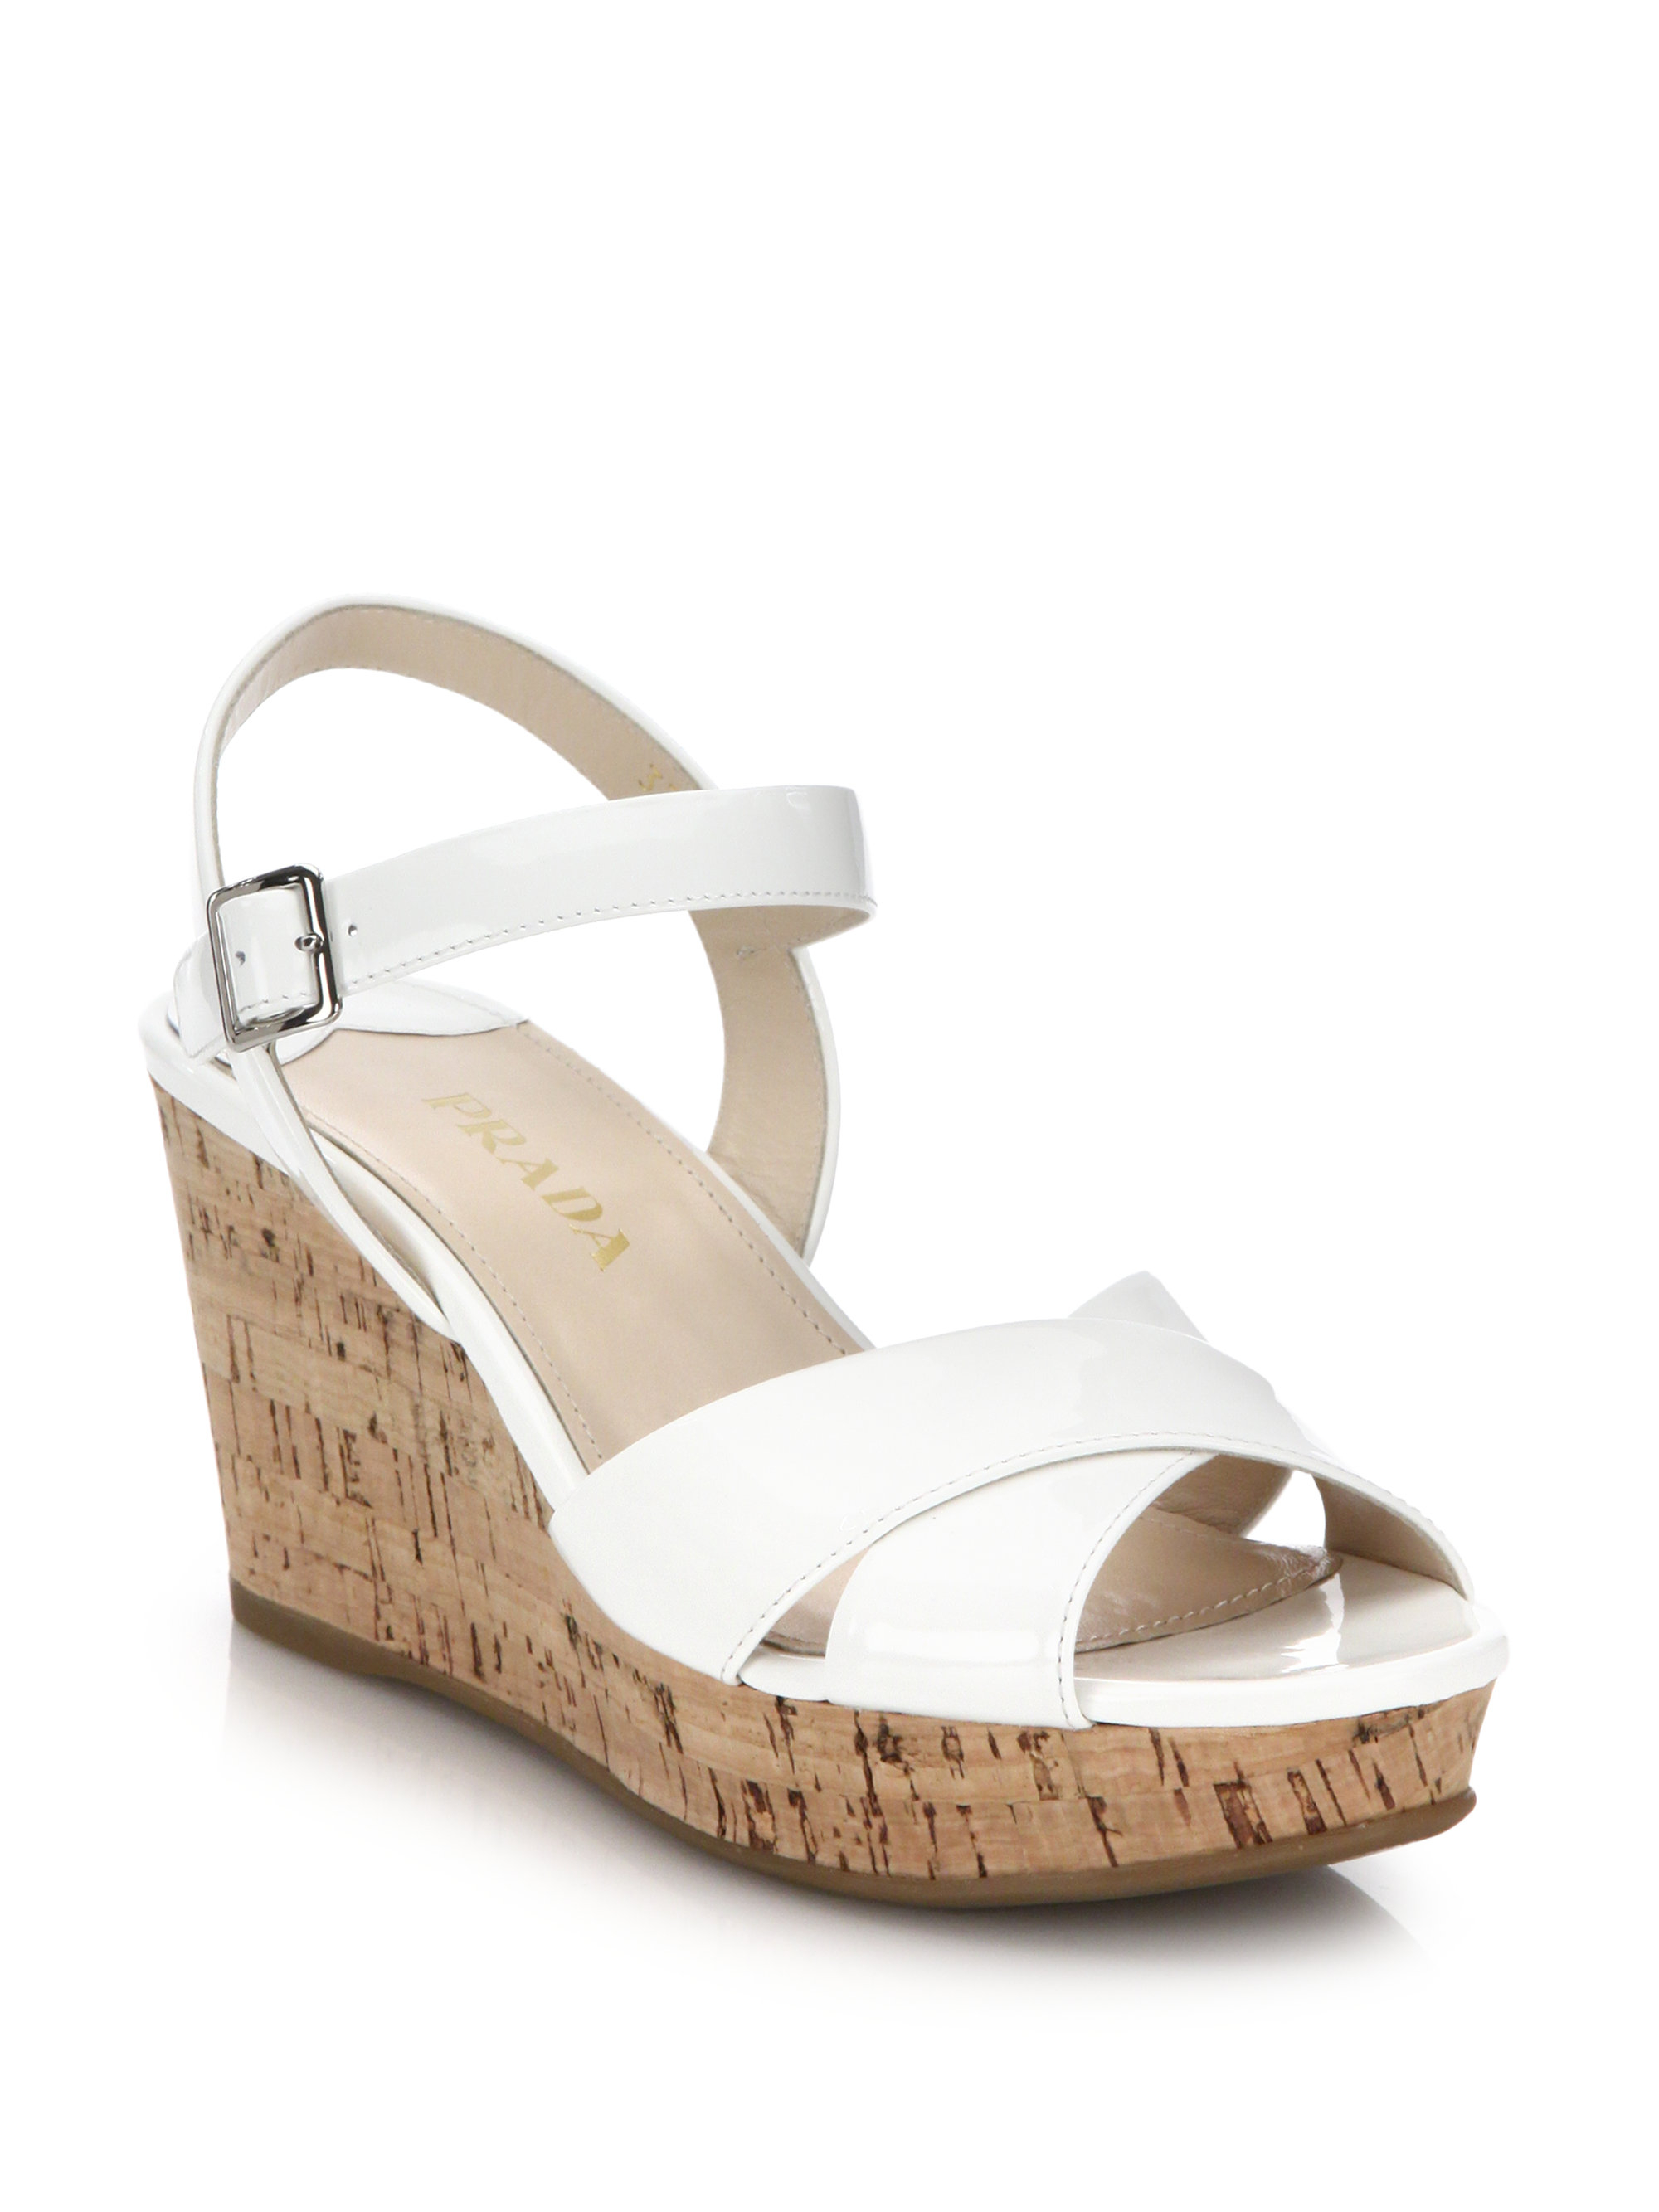 d2f2d442e4986 Lyst - Prada Cork-wedge Patent Leather Sandals in White